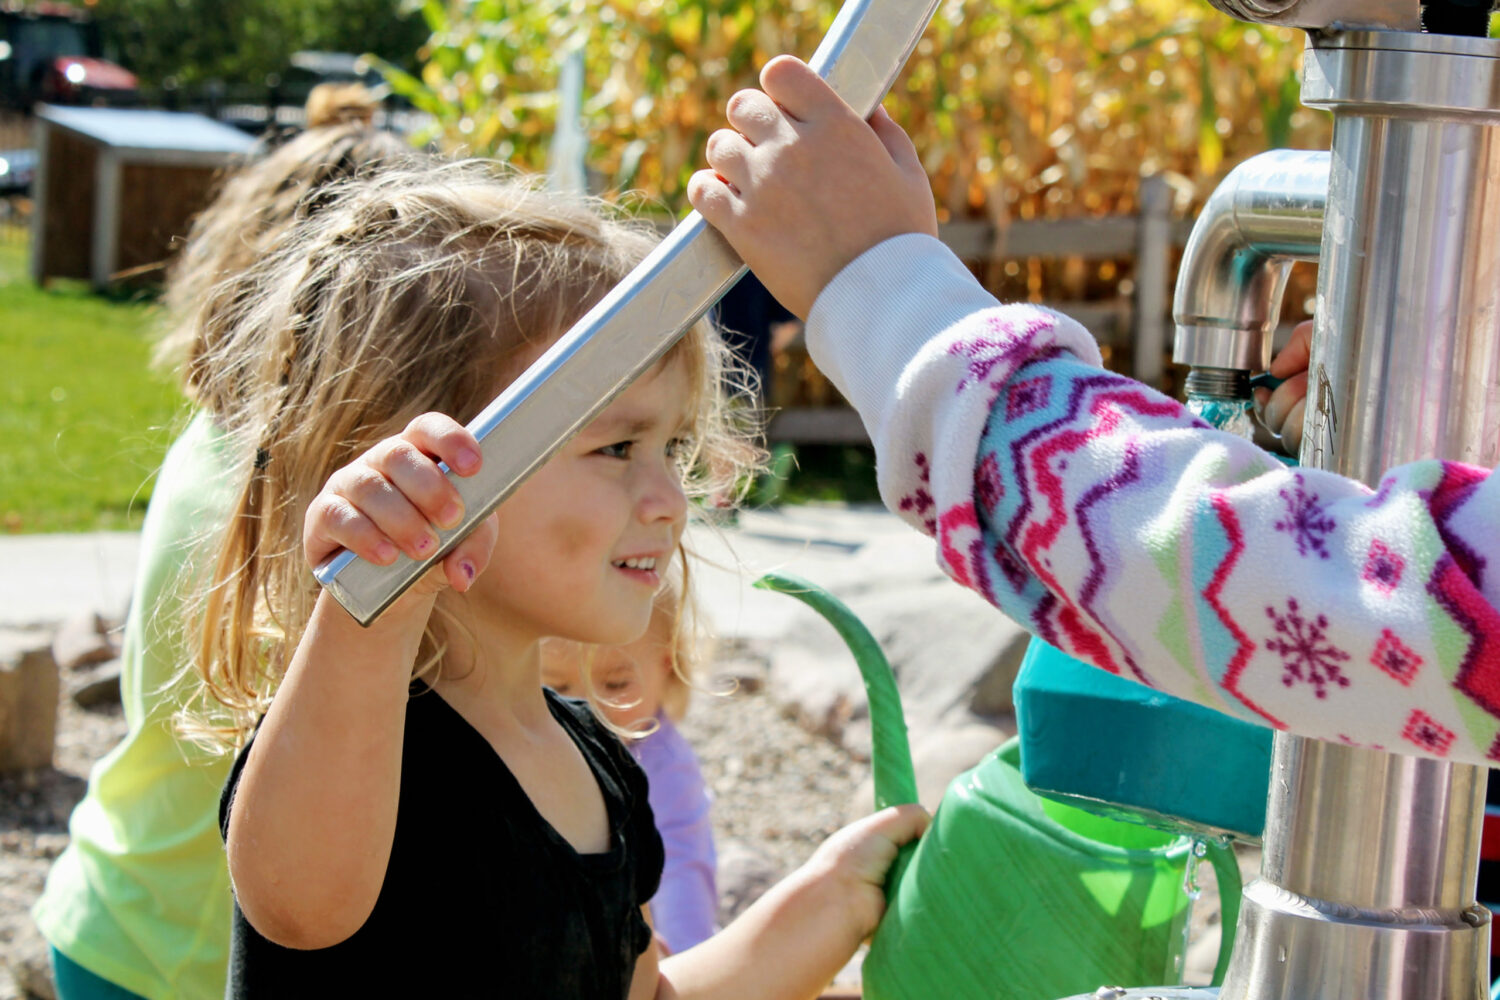 Child-pumping-water-pump-water-play-outdoor-nature-play-area-Dotson-Back-40-Alltech-Farmyard-Childrens-Museum-of-Southern-Minnesota